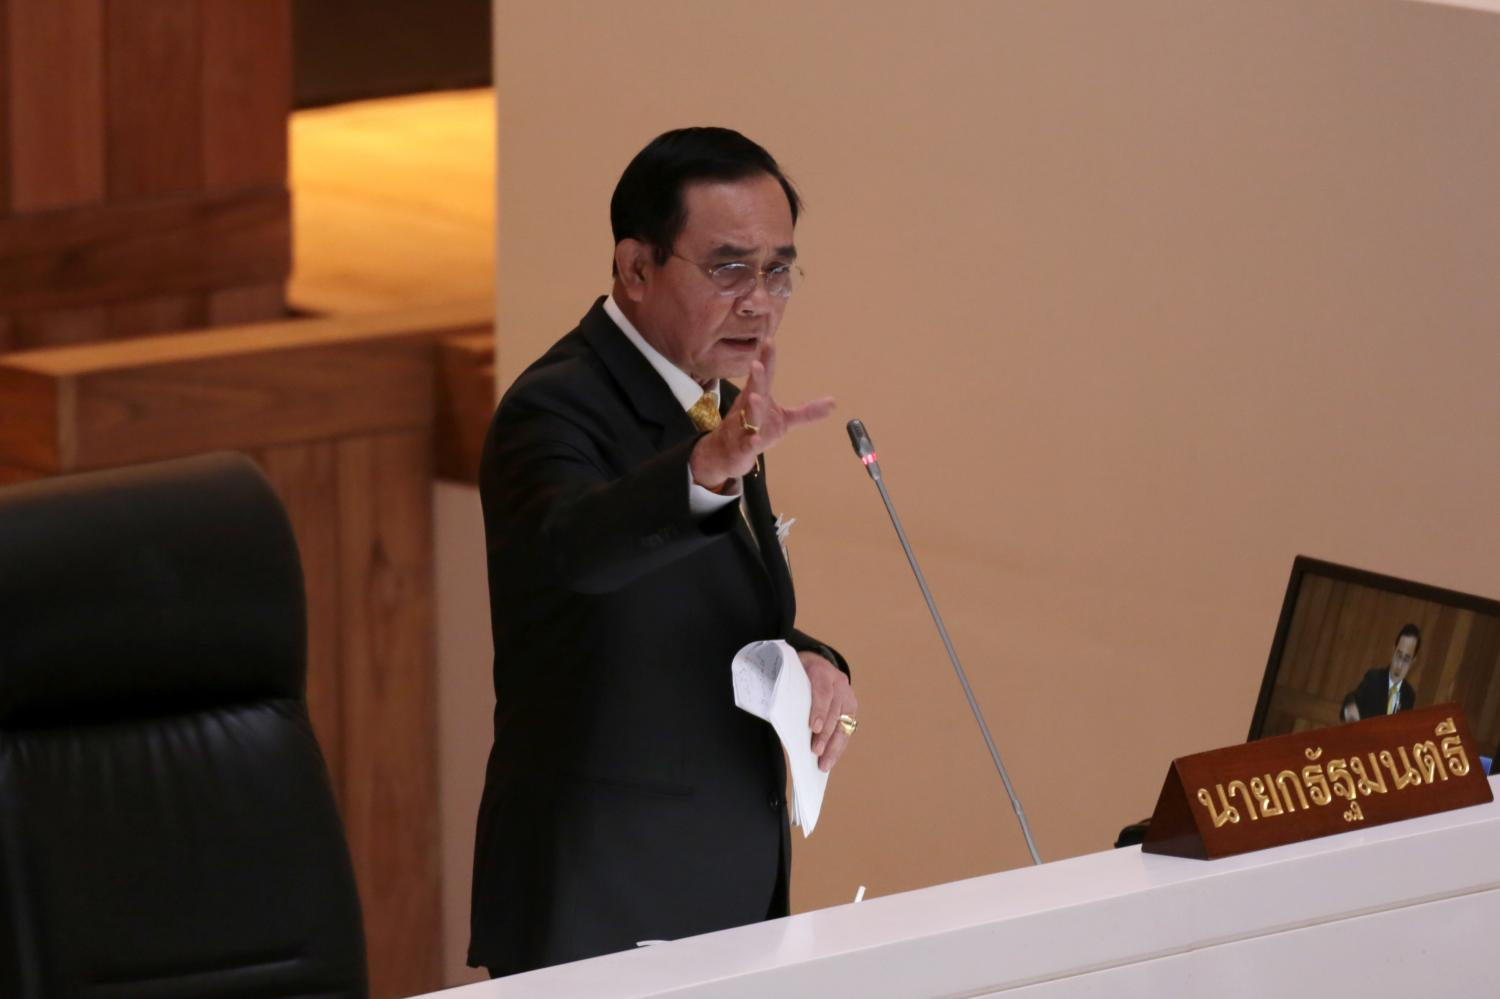 A recent poll shows the public wants Prime Minister Prayut Chan-o-cha to reshuffle his cabinet. Chanat Katanyu